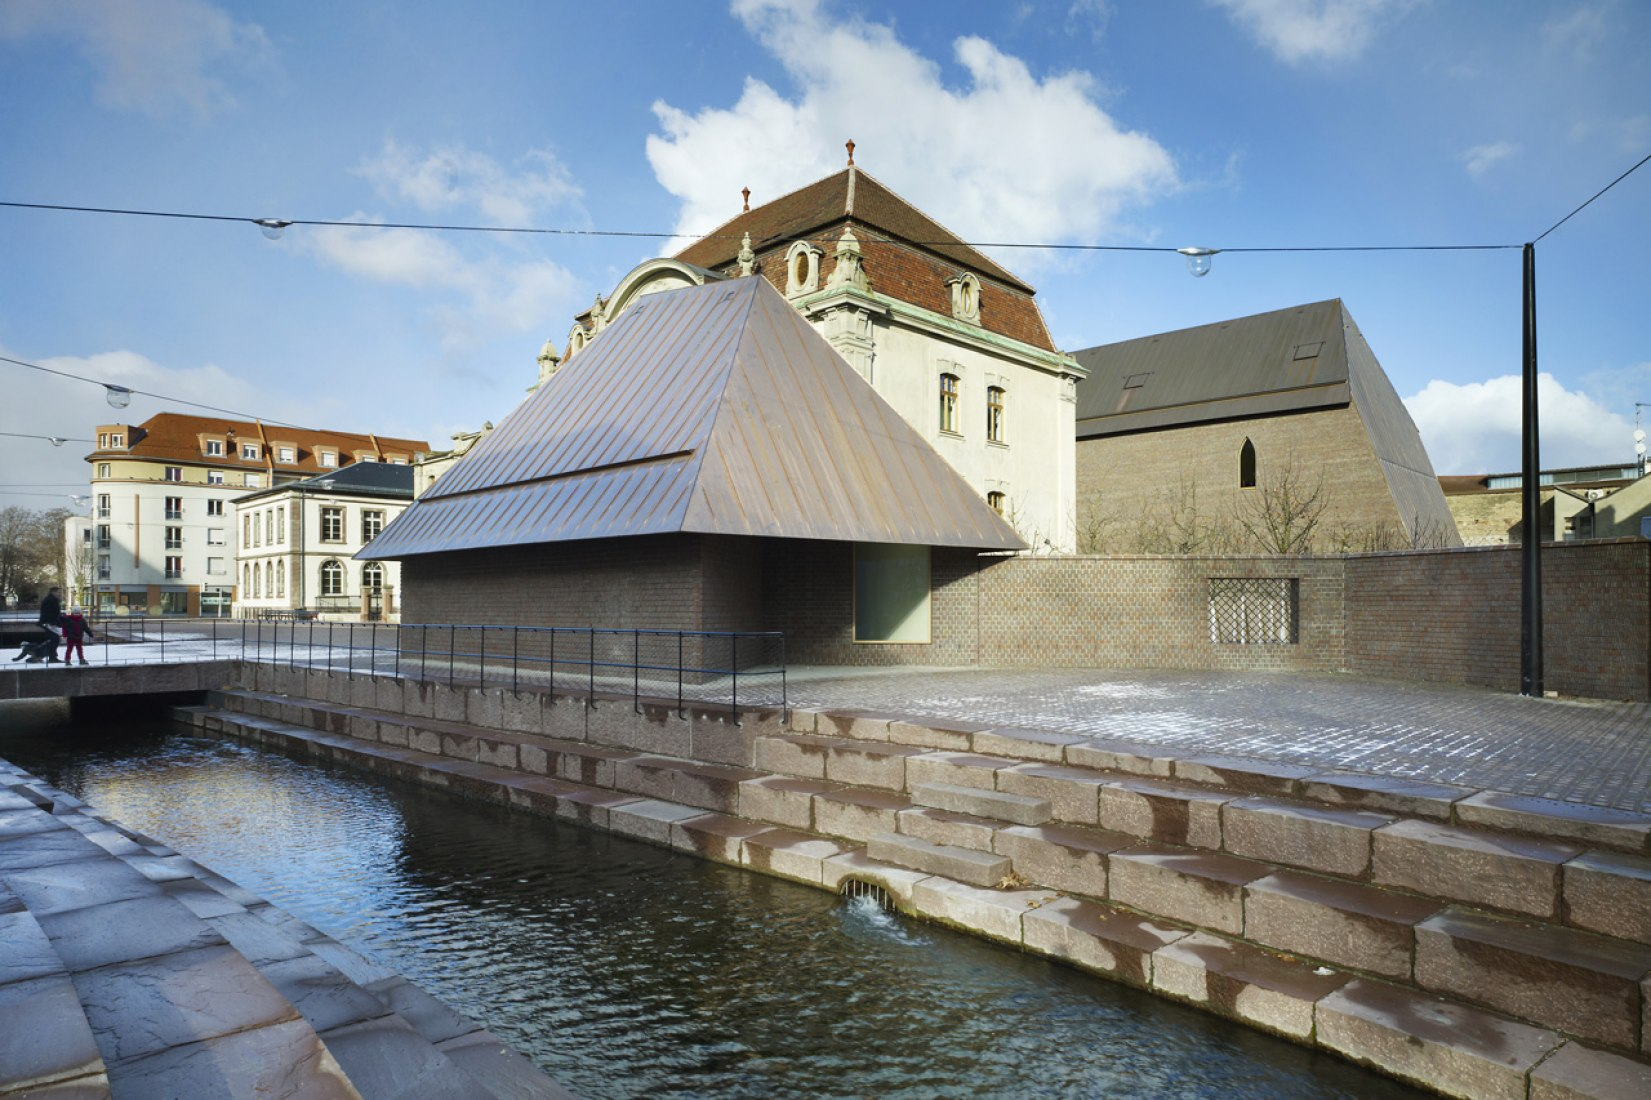 A small building referred to as 'la maison' sits close to the channel. The Musée Unterlinden extension by Herzog & de Meuron. Photograph © Ruedi Walti.